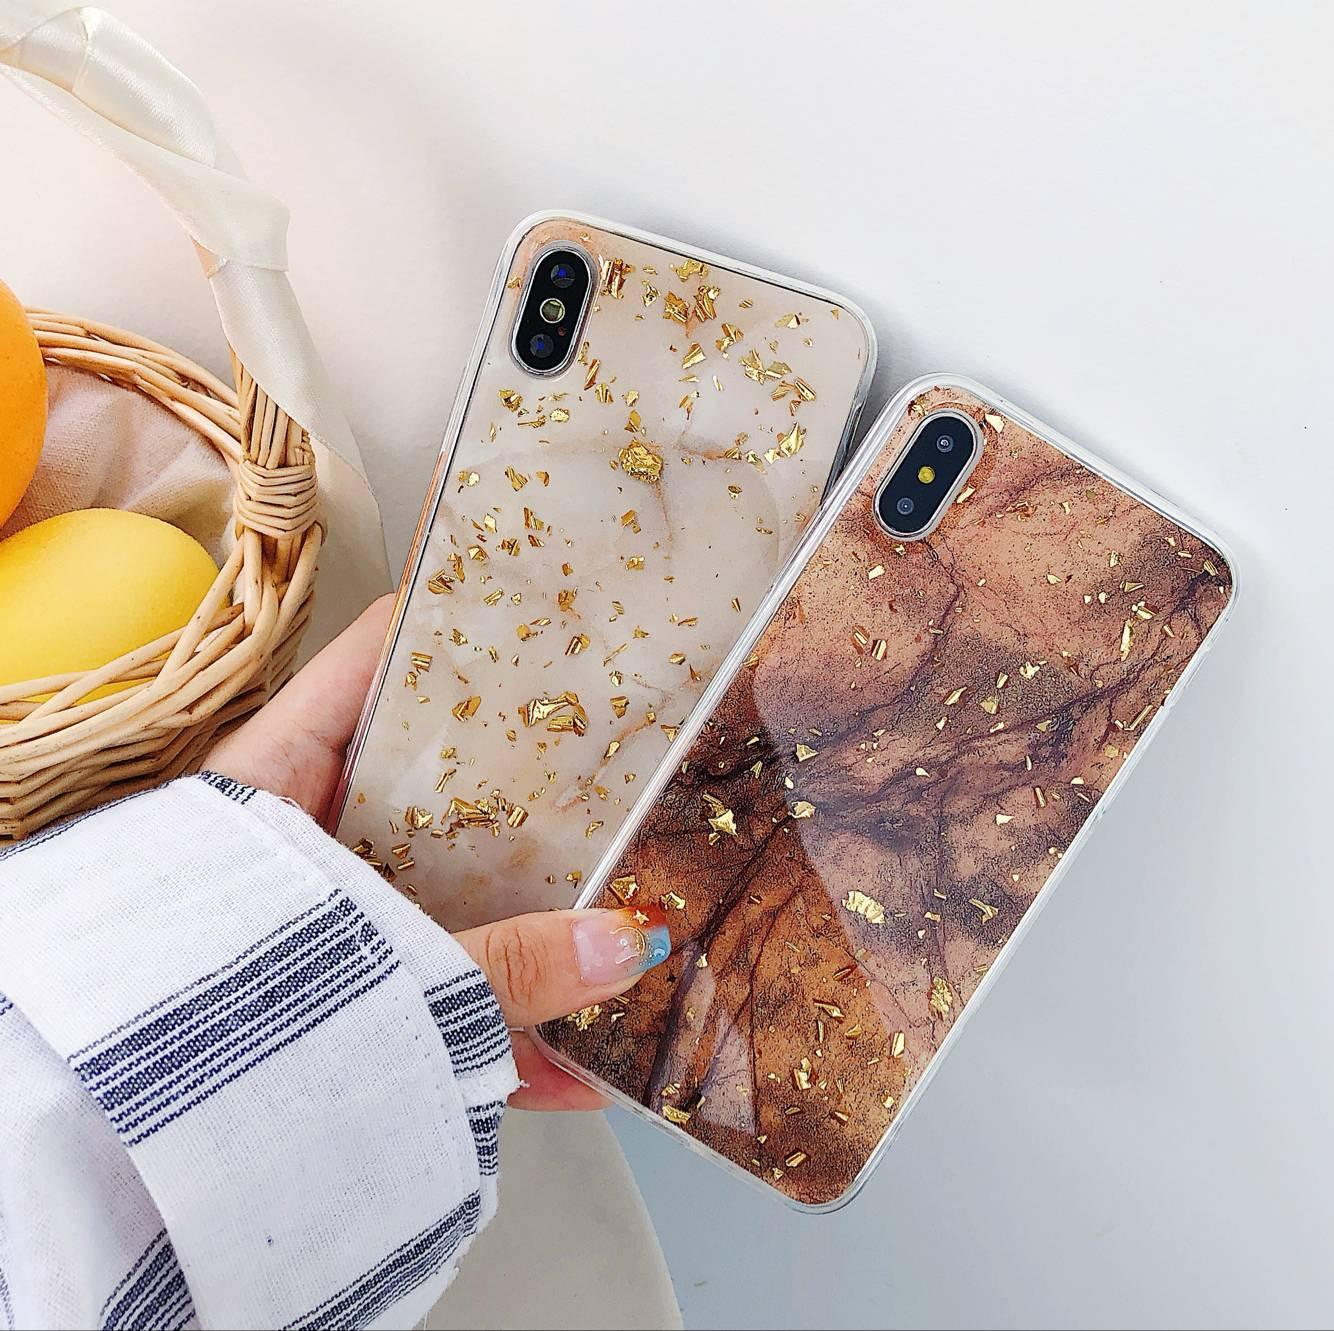 half off 9b065 d147d Gold Foil Bling Marble Phone Case For IPhone X XS Max XR Soft TPU Cover For  IPhone 7 8 6 6s Plus Glitter Case Coque Bedazzled Phone Cases Cell Phone ...